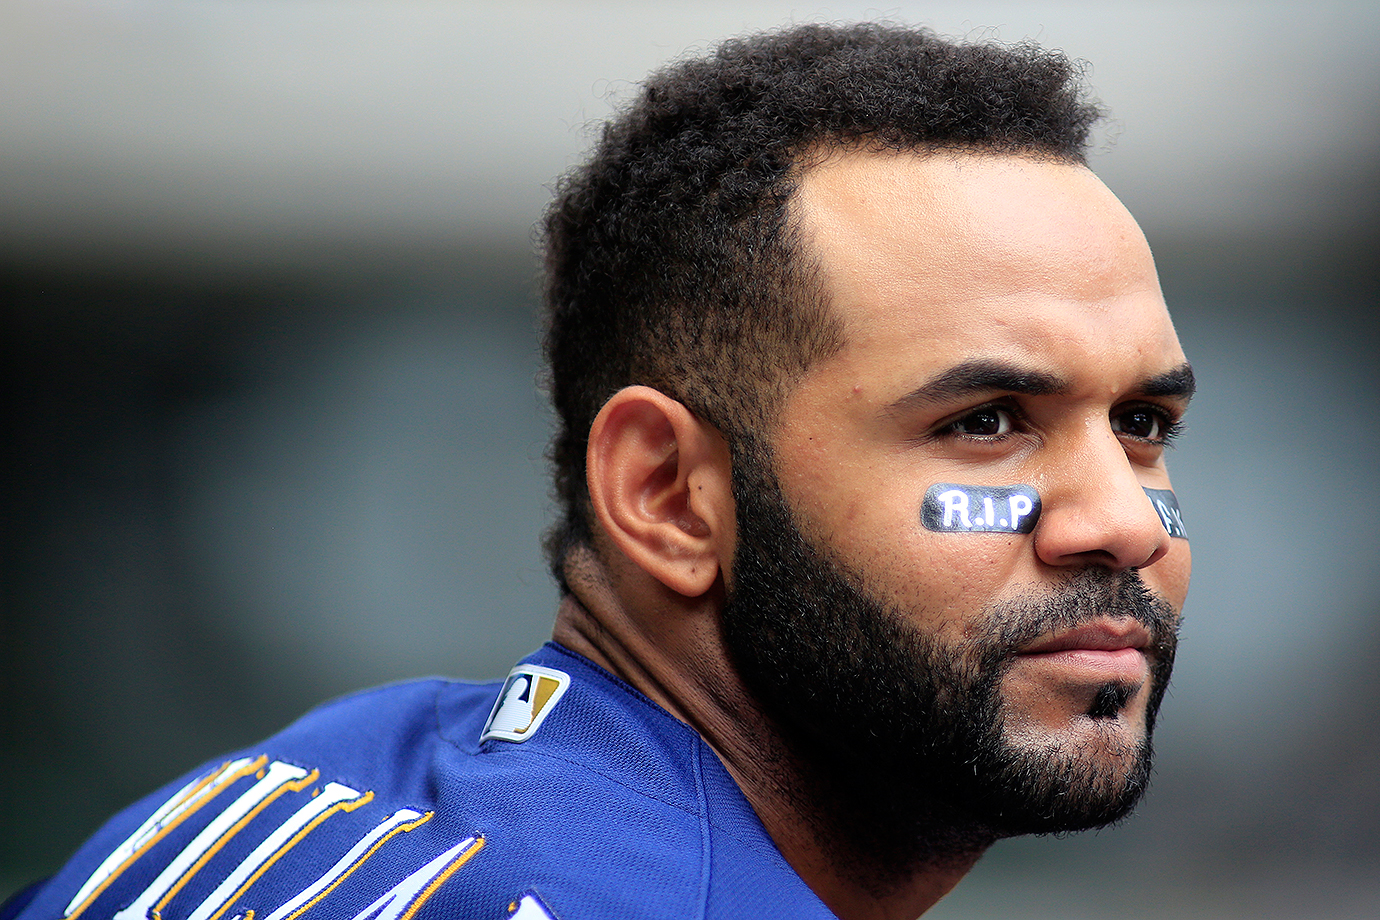 Milwaukee Brewers shortstop Jonathan Villar wears RIP under his eye in memory of Jose Fernandez during a game against the Cincinnati Reds on Sunday, Sept. 25, 2016 at Great American Ball Park in Cincinnati.